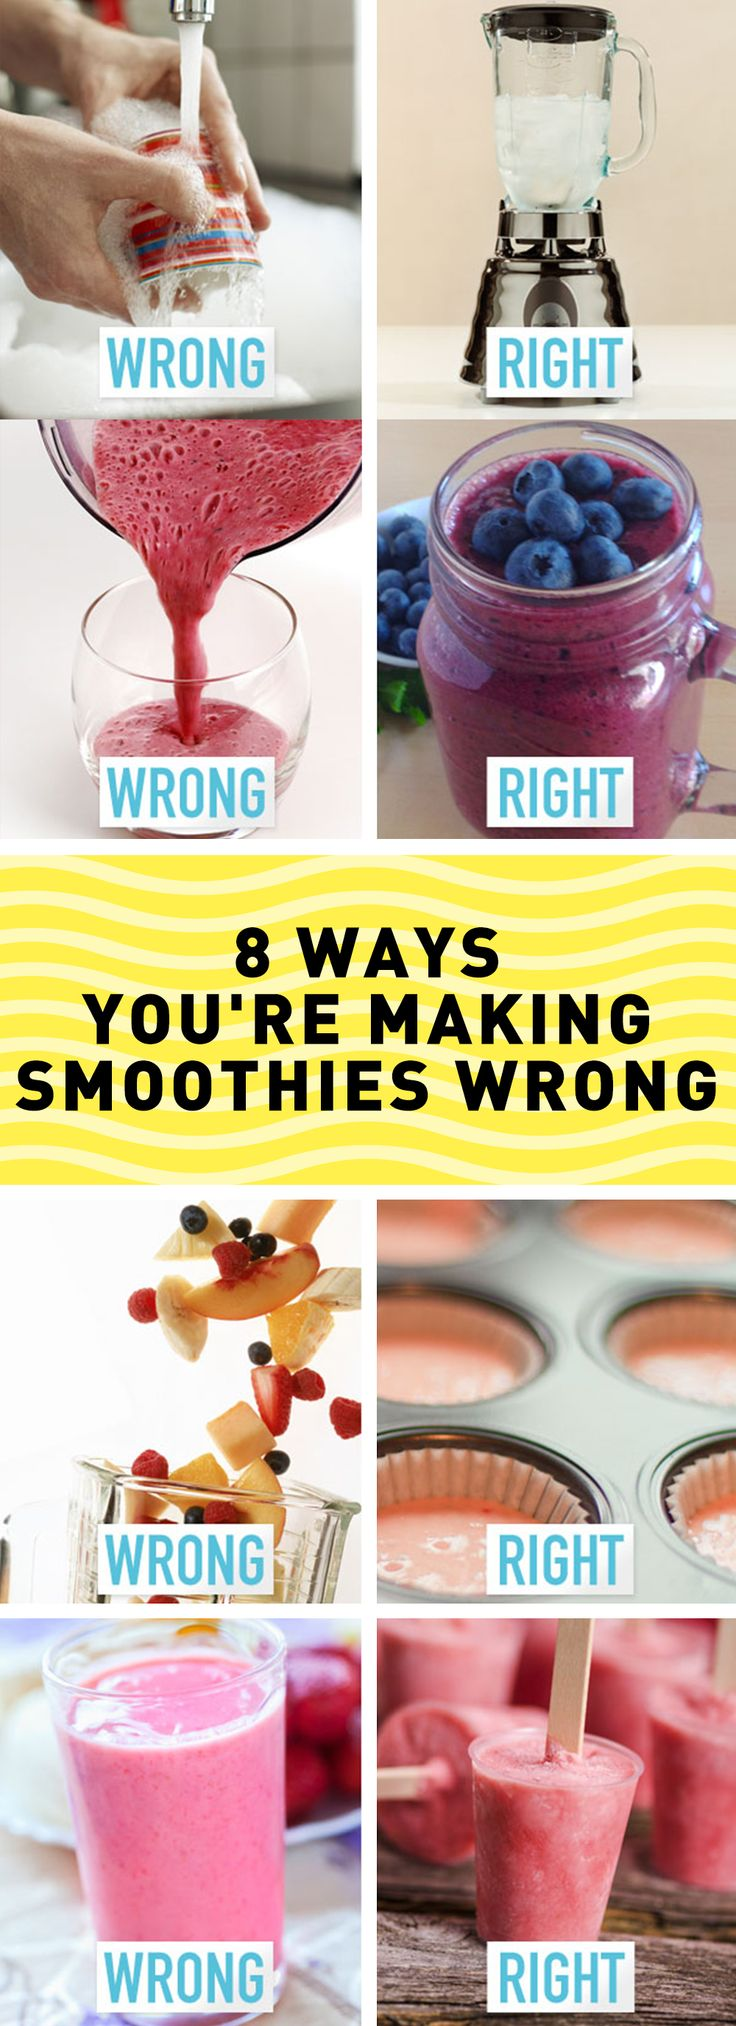 These hacks will make drinking smoothies SO much better.